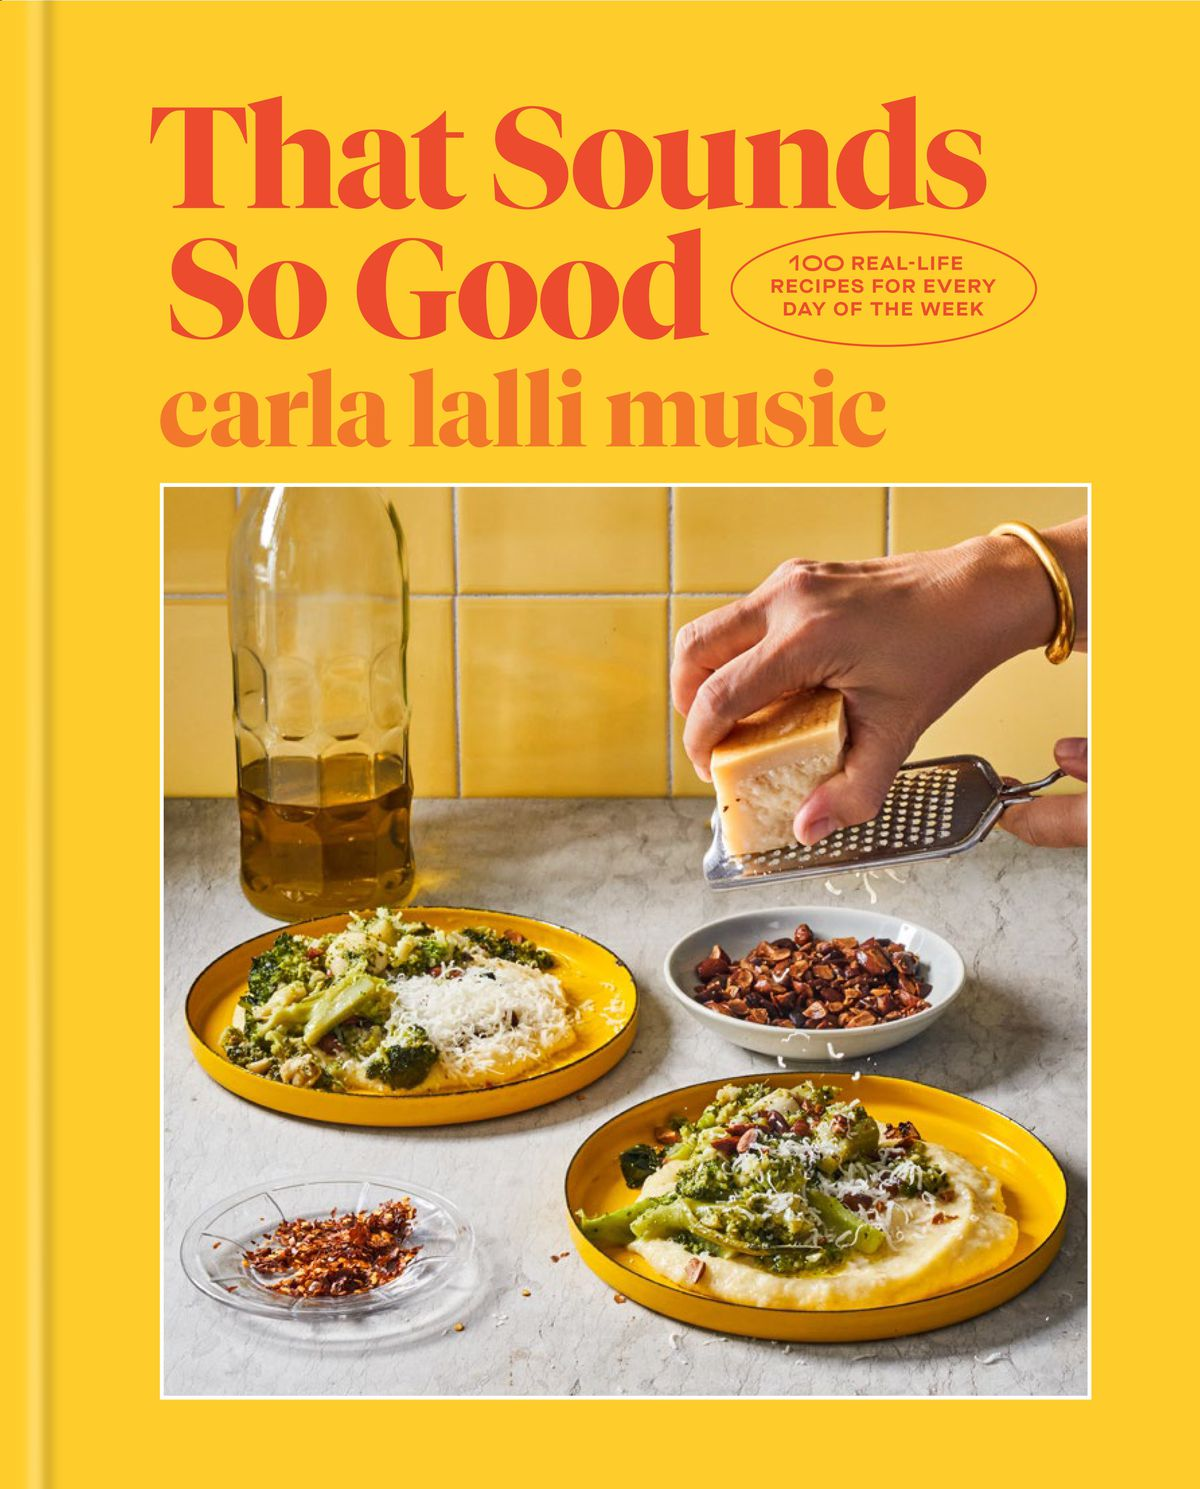 """A cookbook cover with an image of plates with food and a person grating cheese over them and the words """"That Sounds So Good carla lalli music"""""""